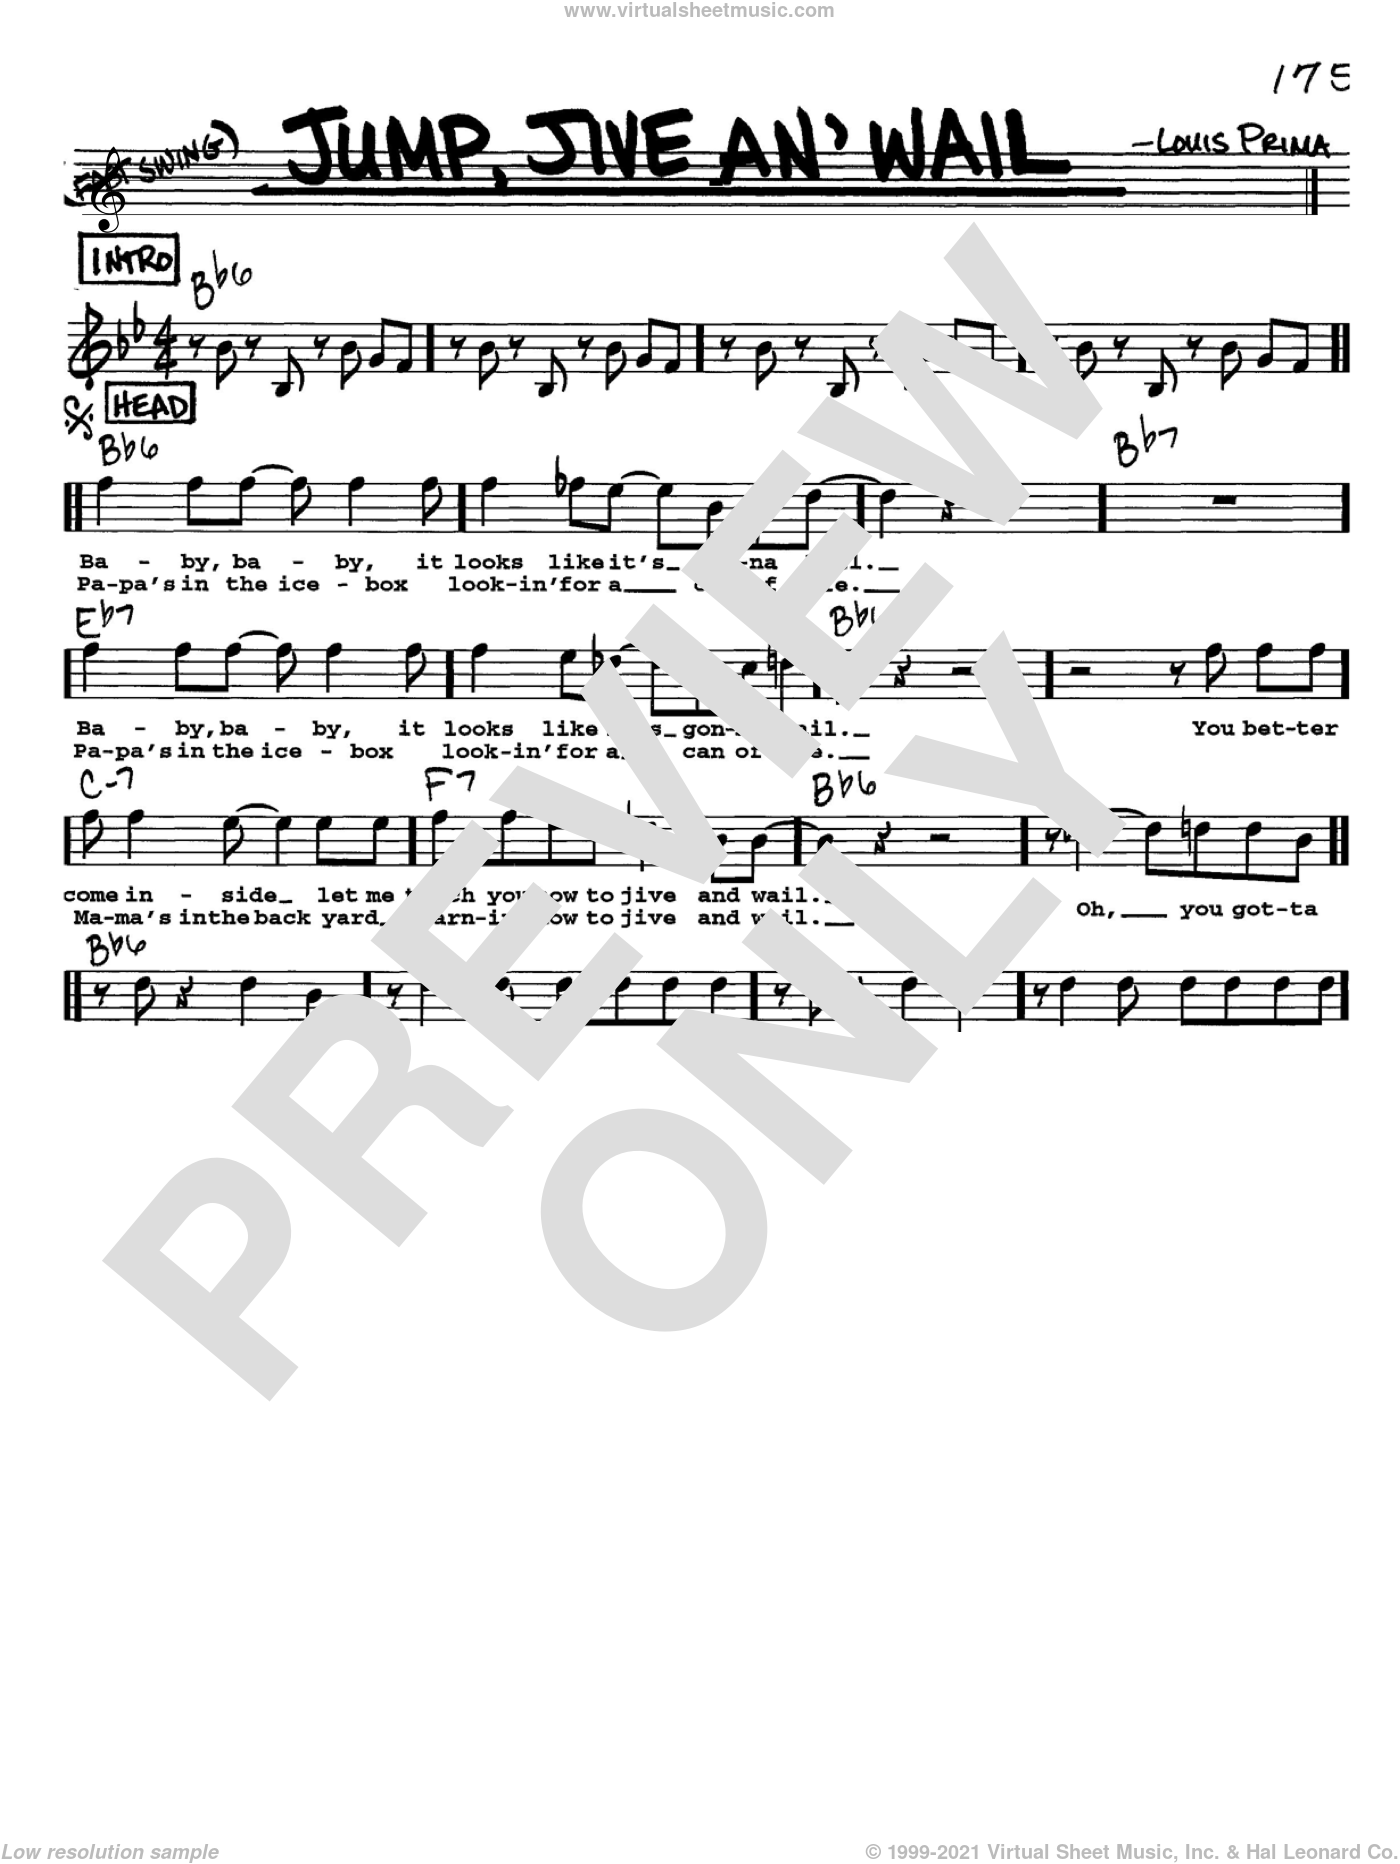 Jump, Jive An' Wail sheet music for voice and other instruments (Vocal Volume 1) by Louis Prima, intermediate voice. Score Image Preview.